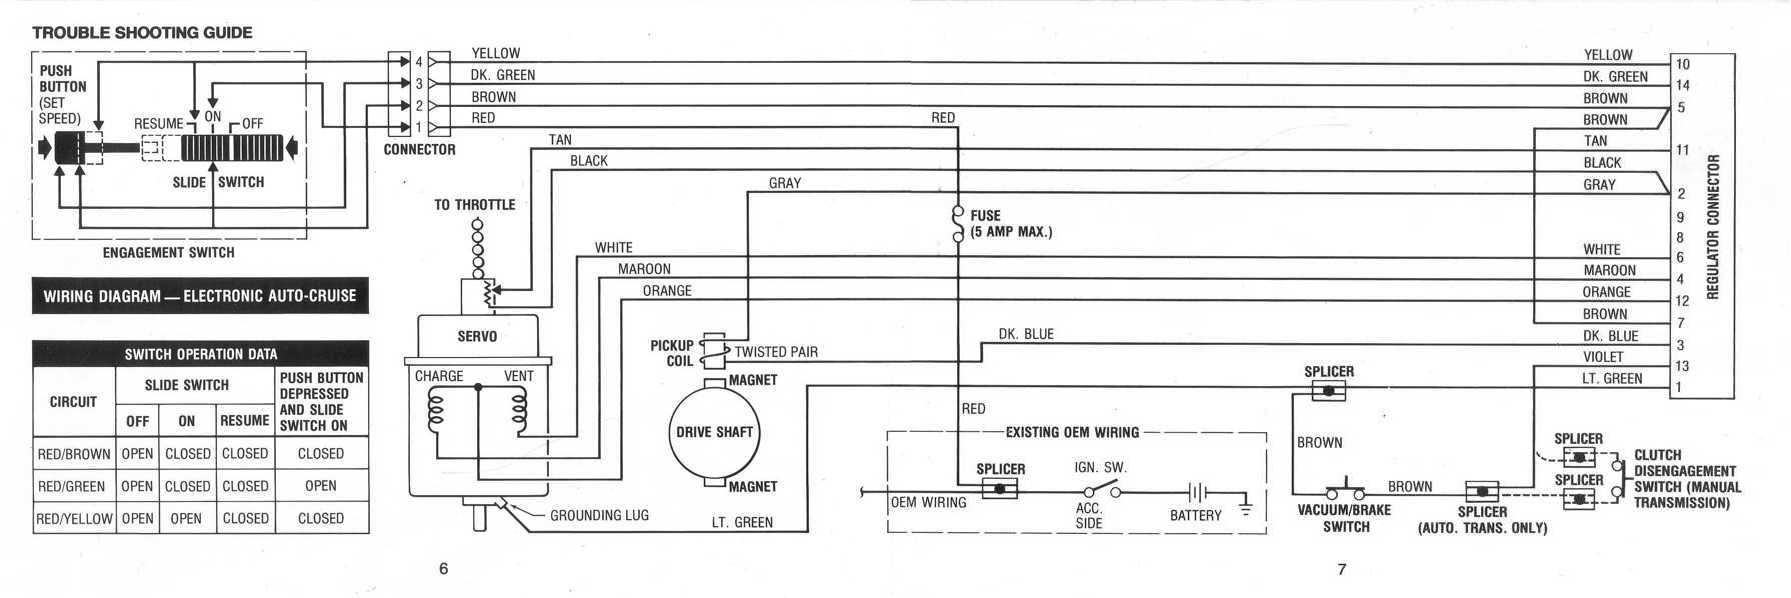 Zig Cf9 Wiring Diagram Free Download Vw T2 1977 For Hd Wallpapers Colnago At